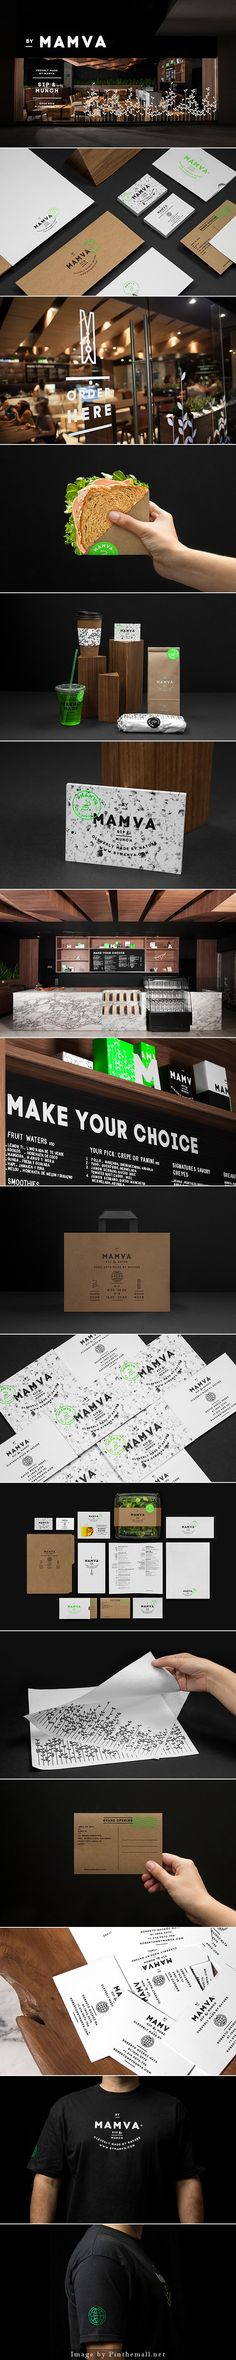 https://www.behance.net/gallery/18834581/Mamva... - a grouped images picture